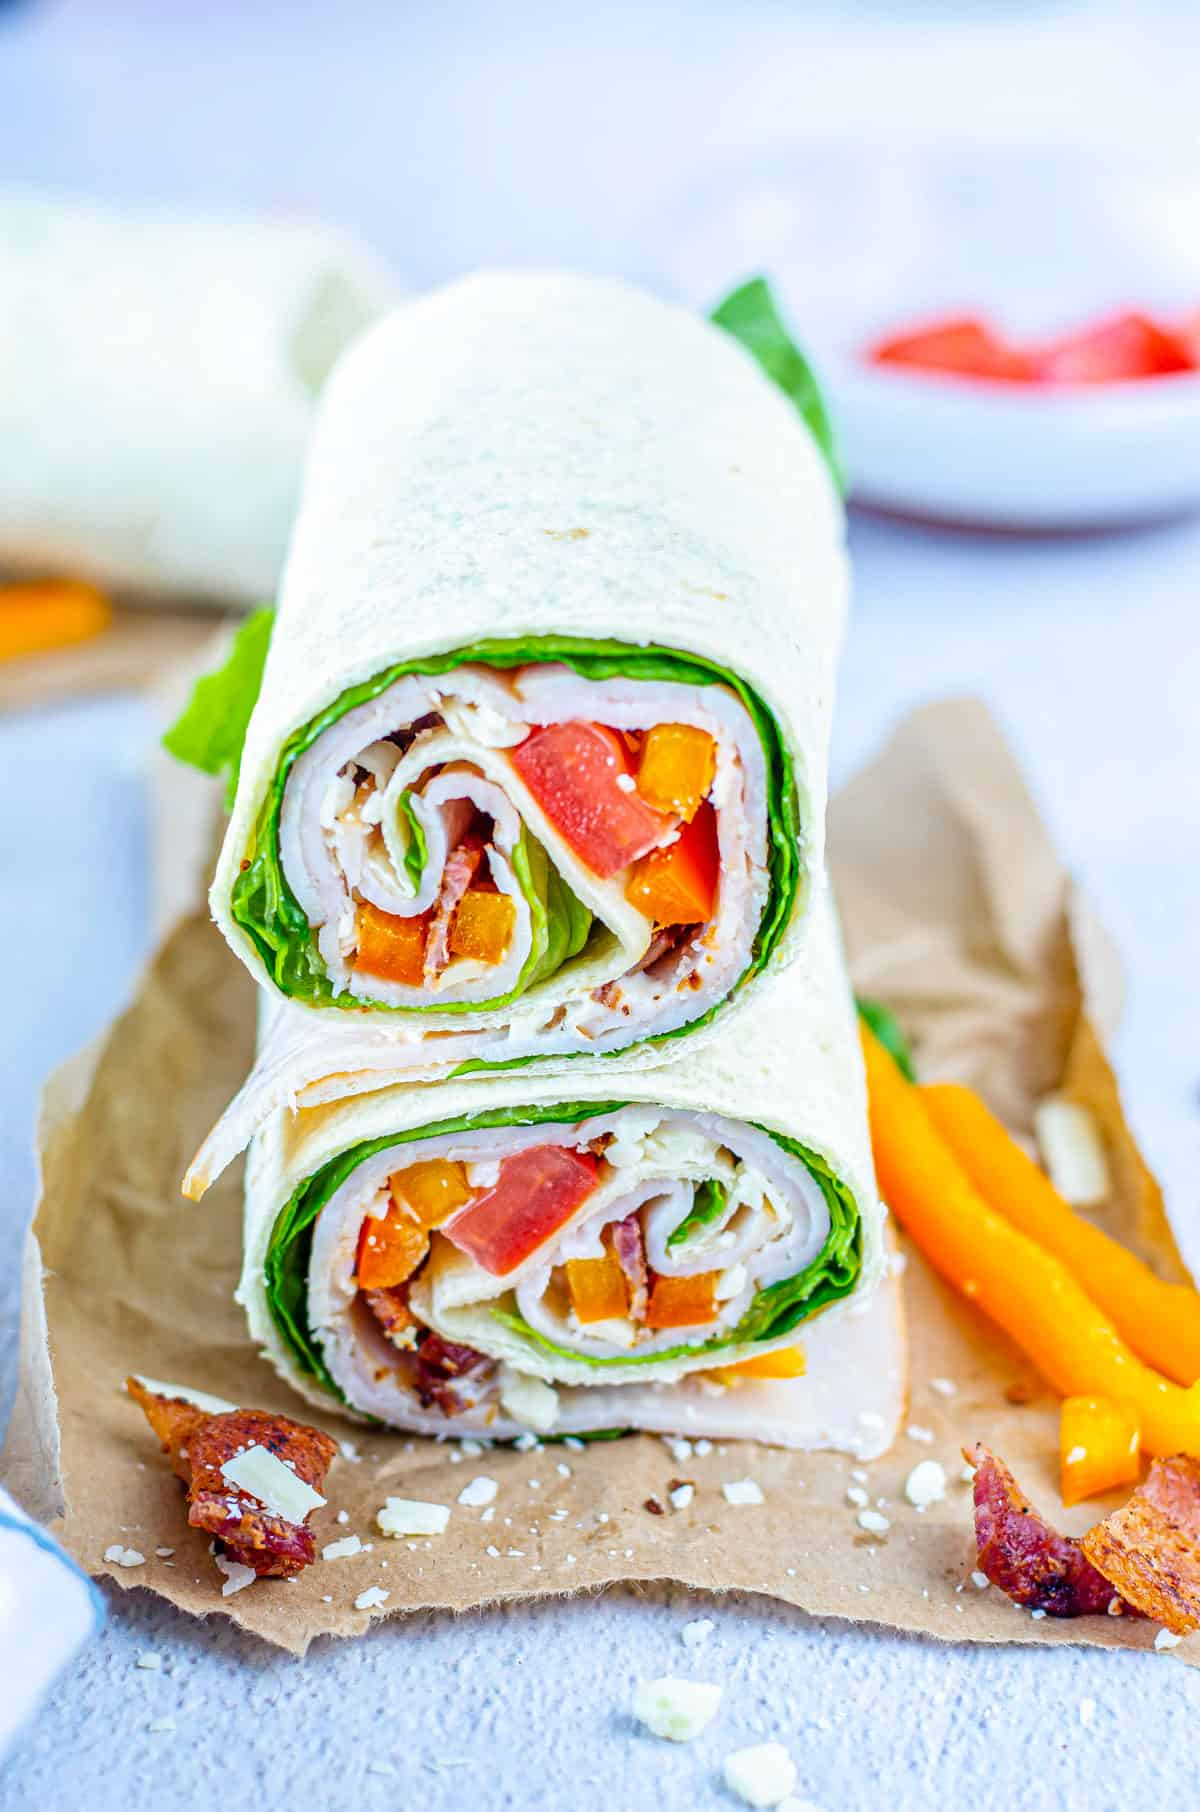 the finished chicken bacon ranch wrap stacked and ready to serve